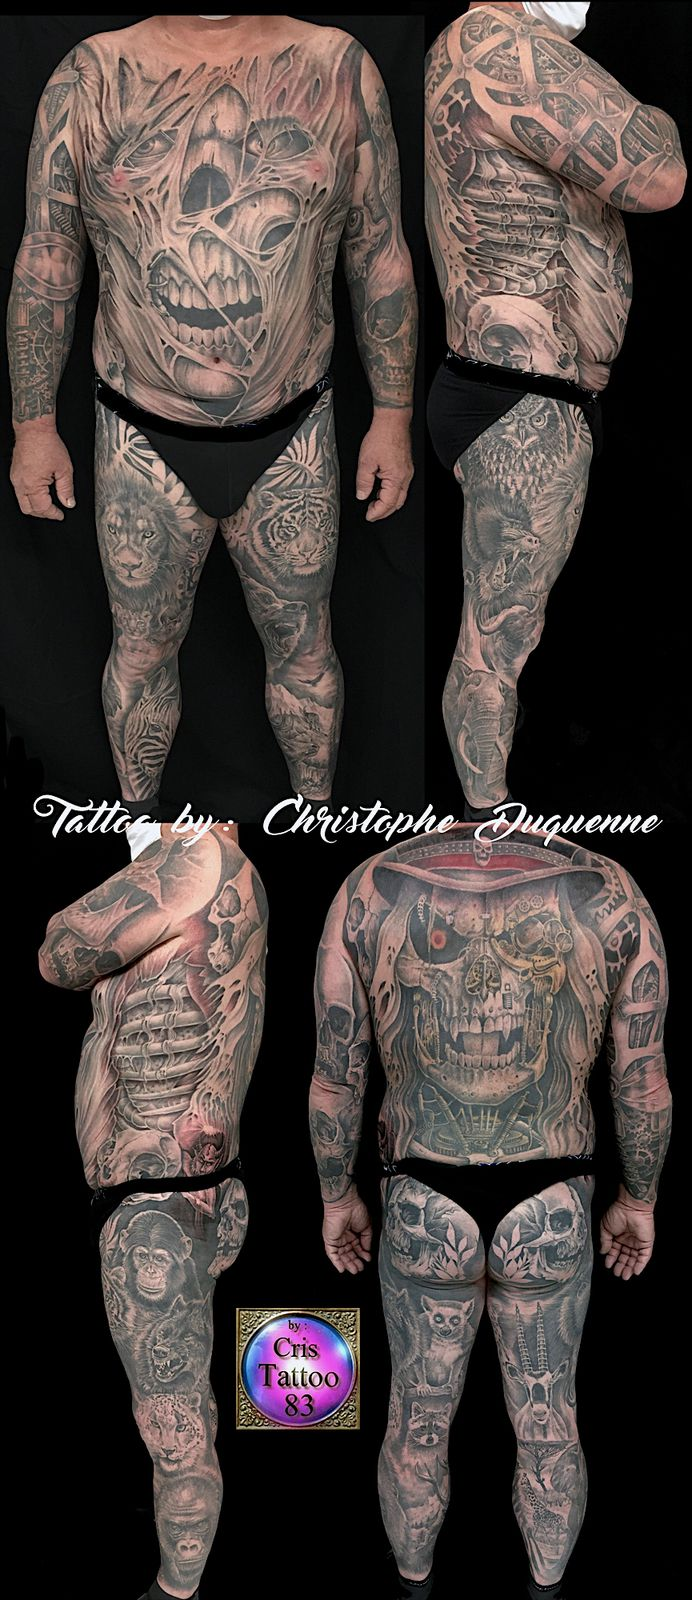 Tatouage corps complet